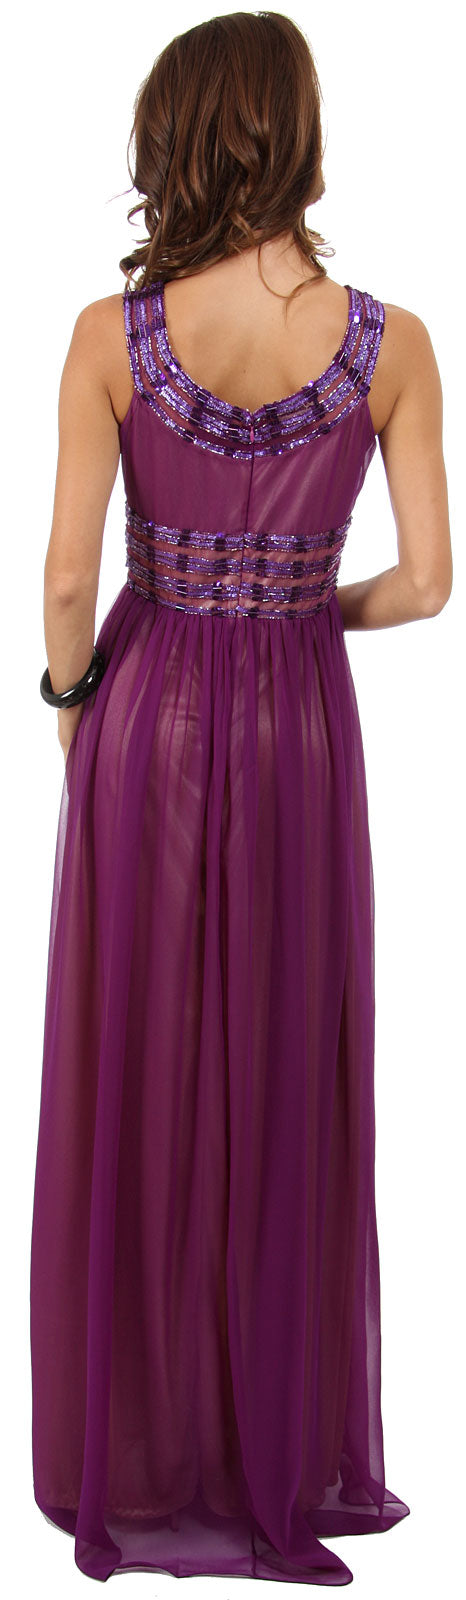 Back image of Round Neck Empire Cut Sequined Floor Length Prom Dress